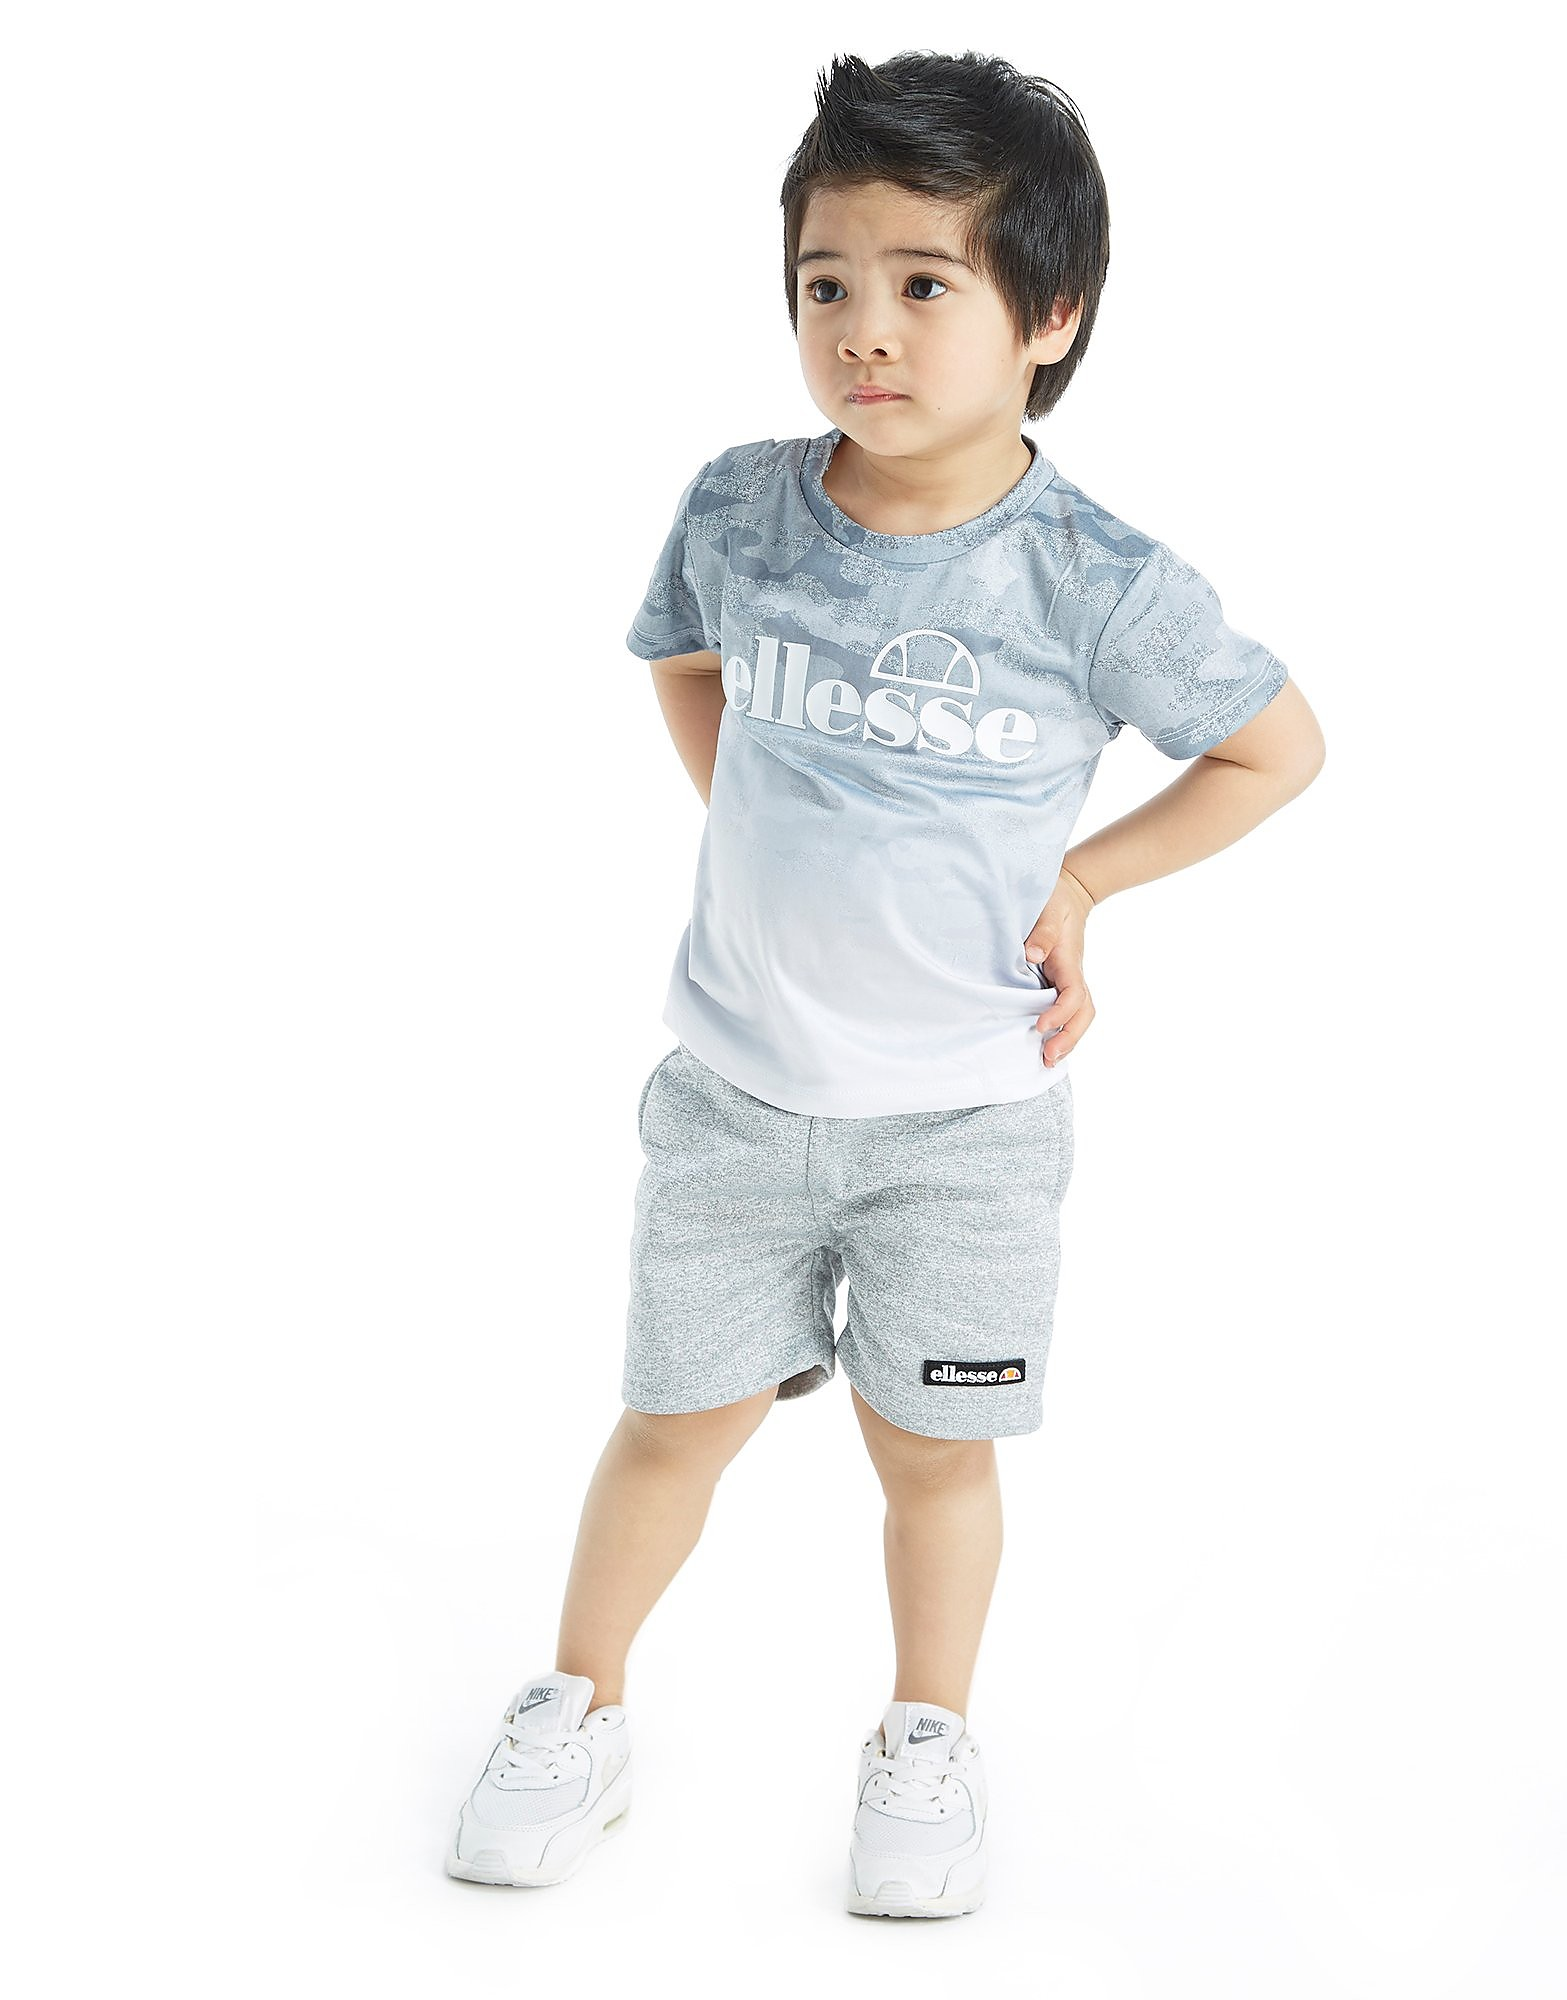 Ellesse Diego Fade T-Shirt & Shorts Set Infant